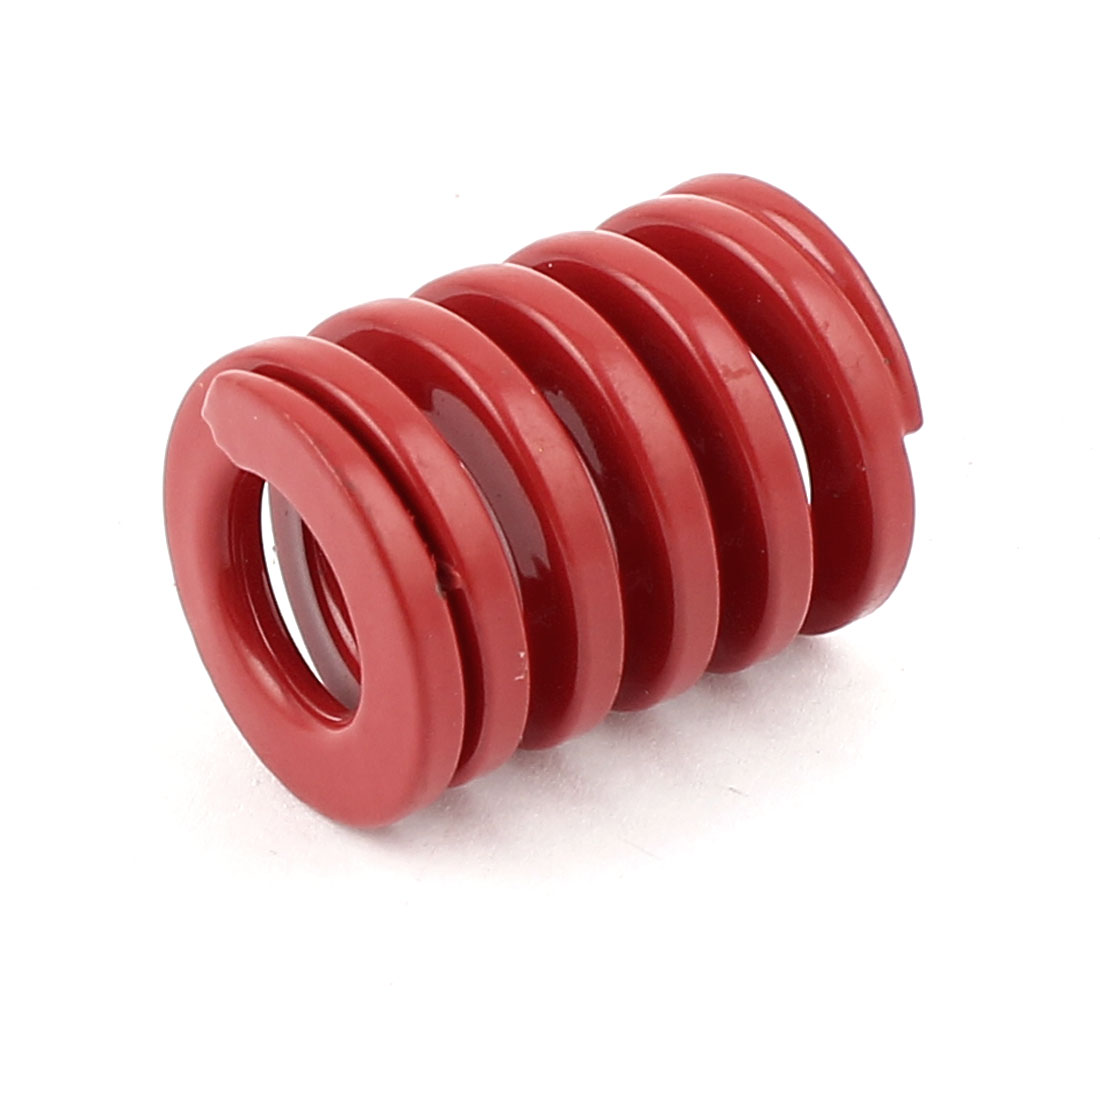 Red Alloy Steel Medium Load Press Flat Coil Compression Die Spring 20mm x 10mm x 25mm